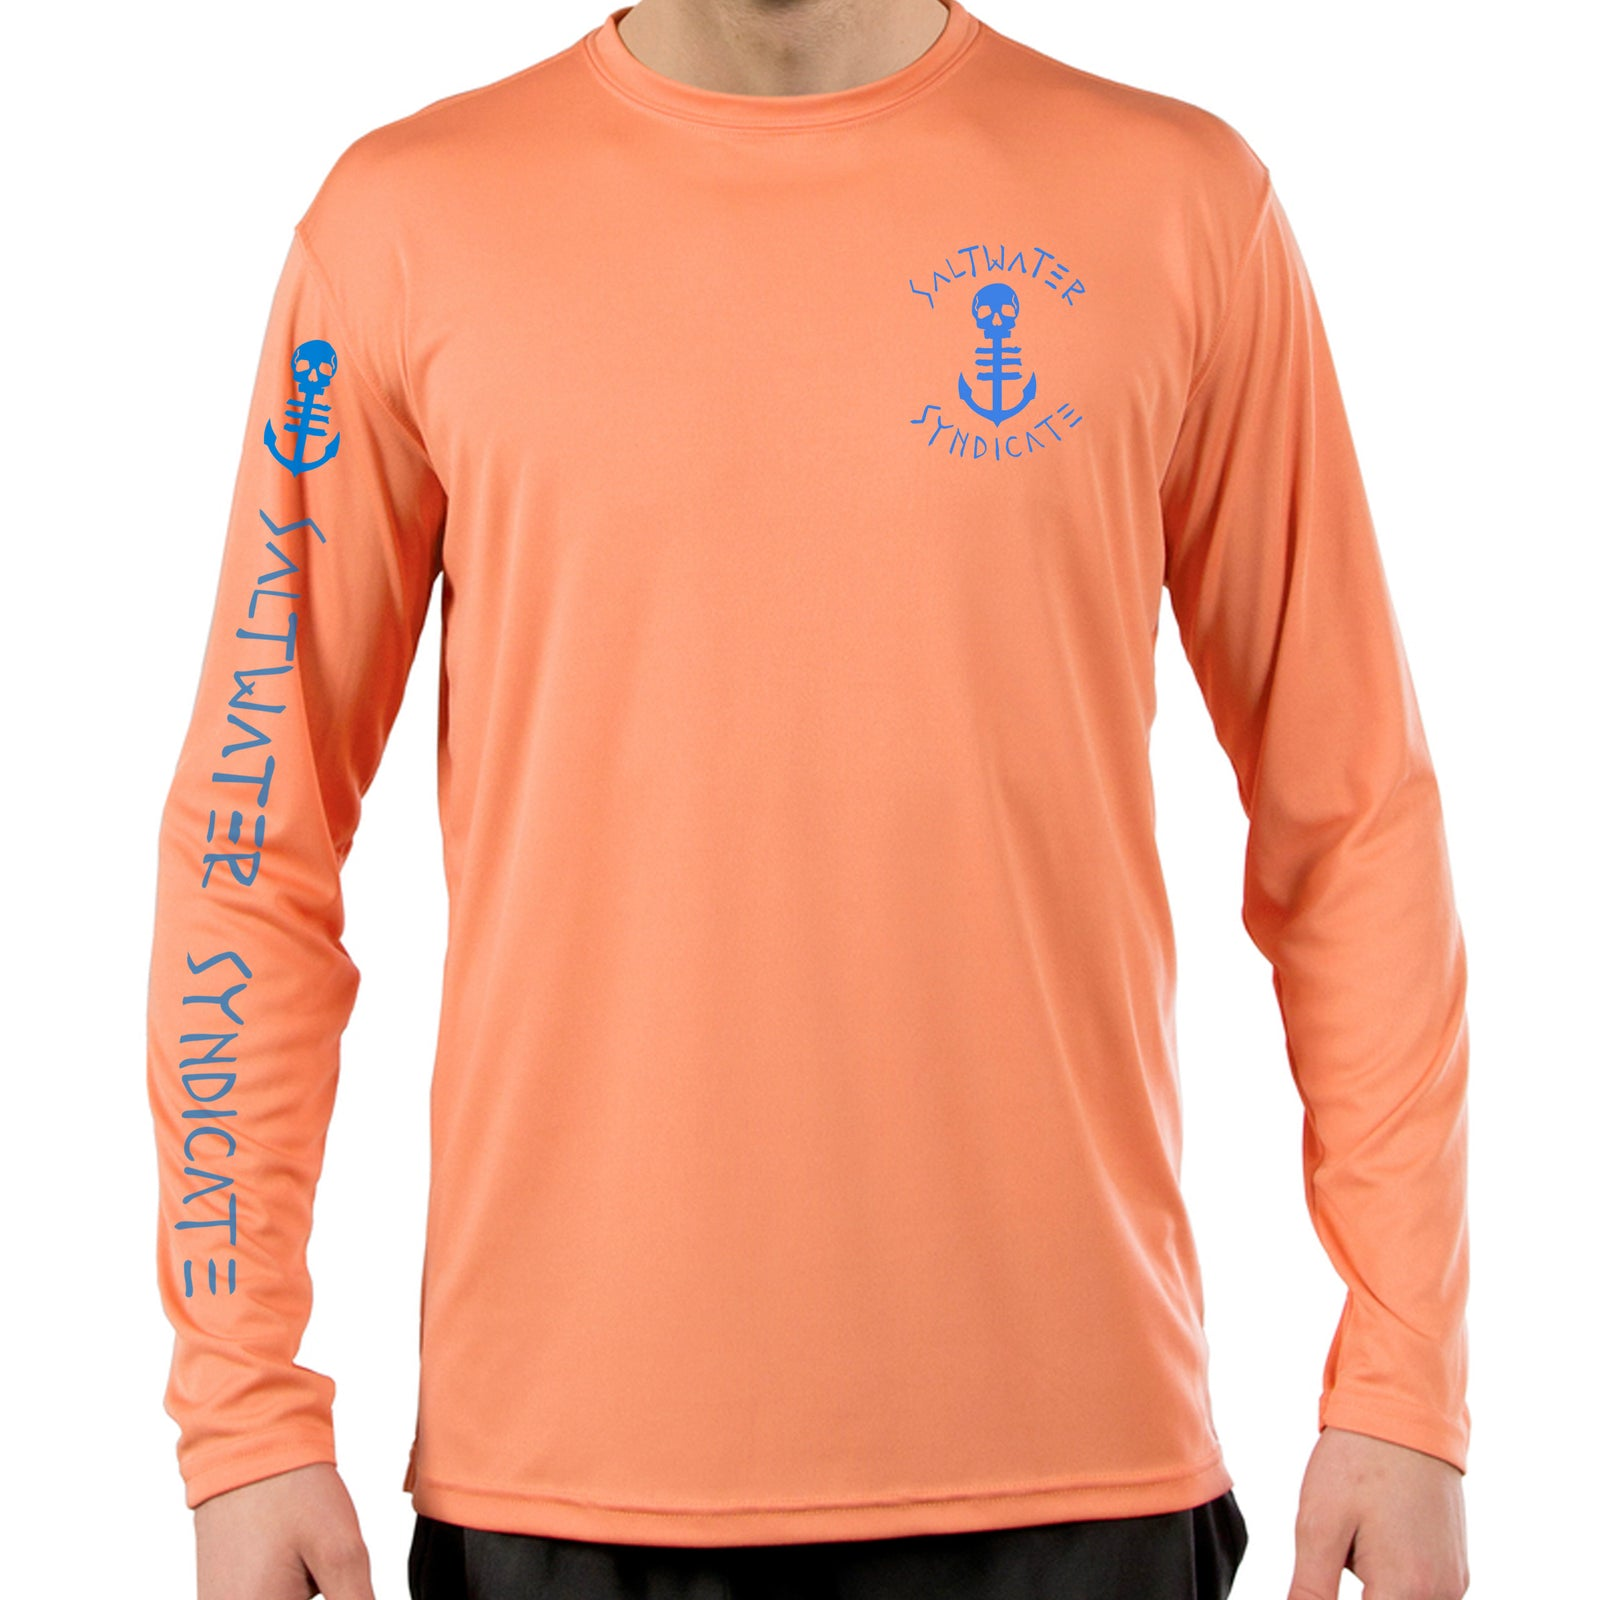 The Crest UPF Performance Long Sleeve - Citrus